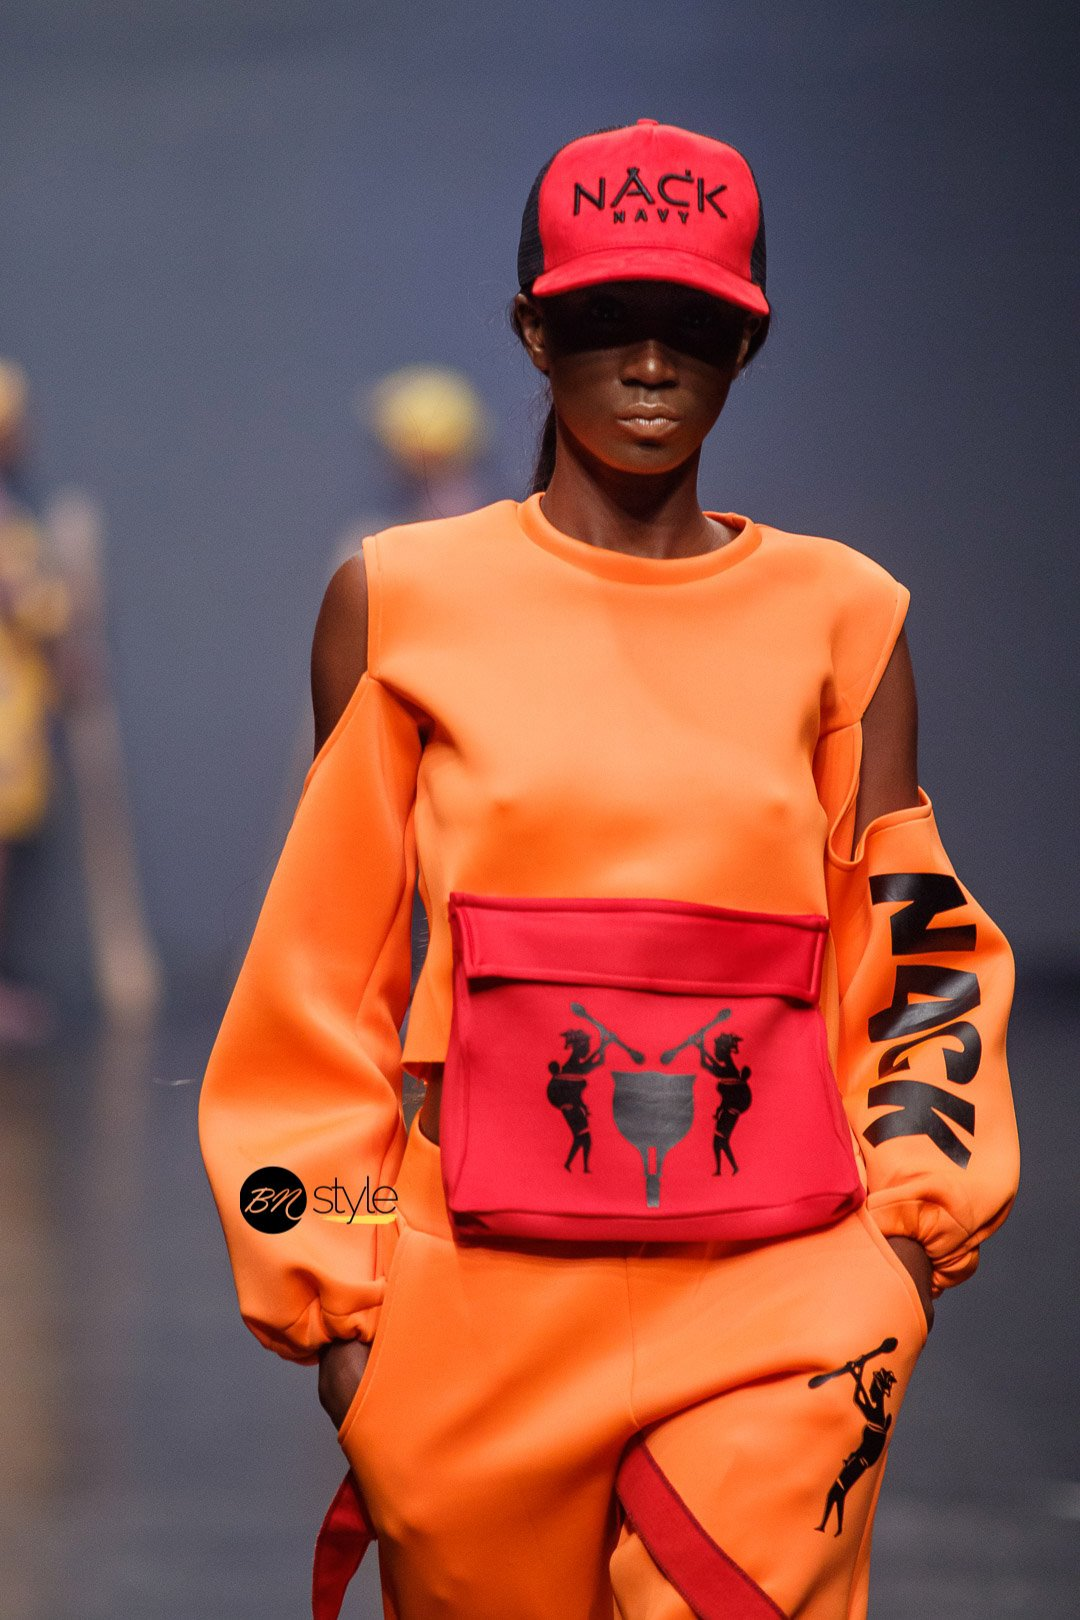 Nack at Lagos Fashion Week 2018